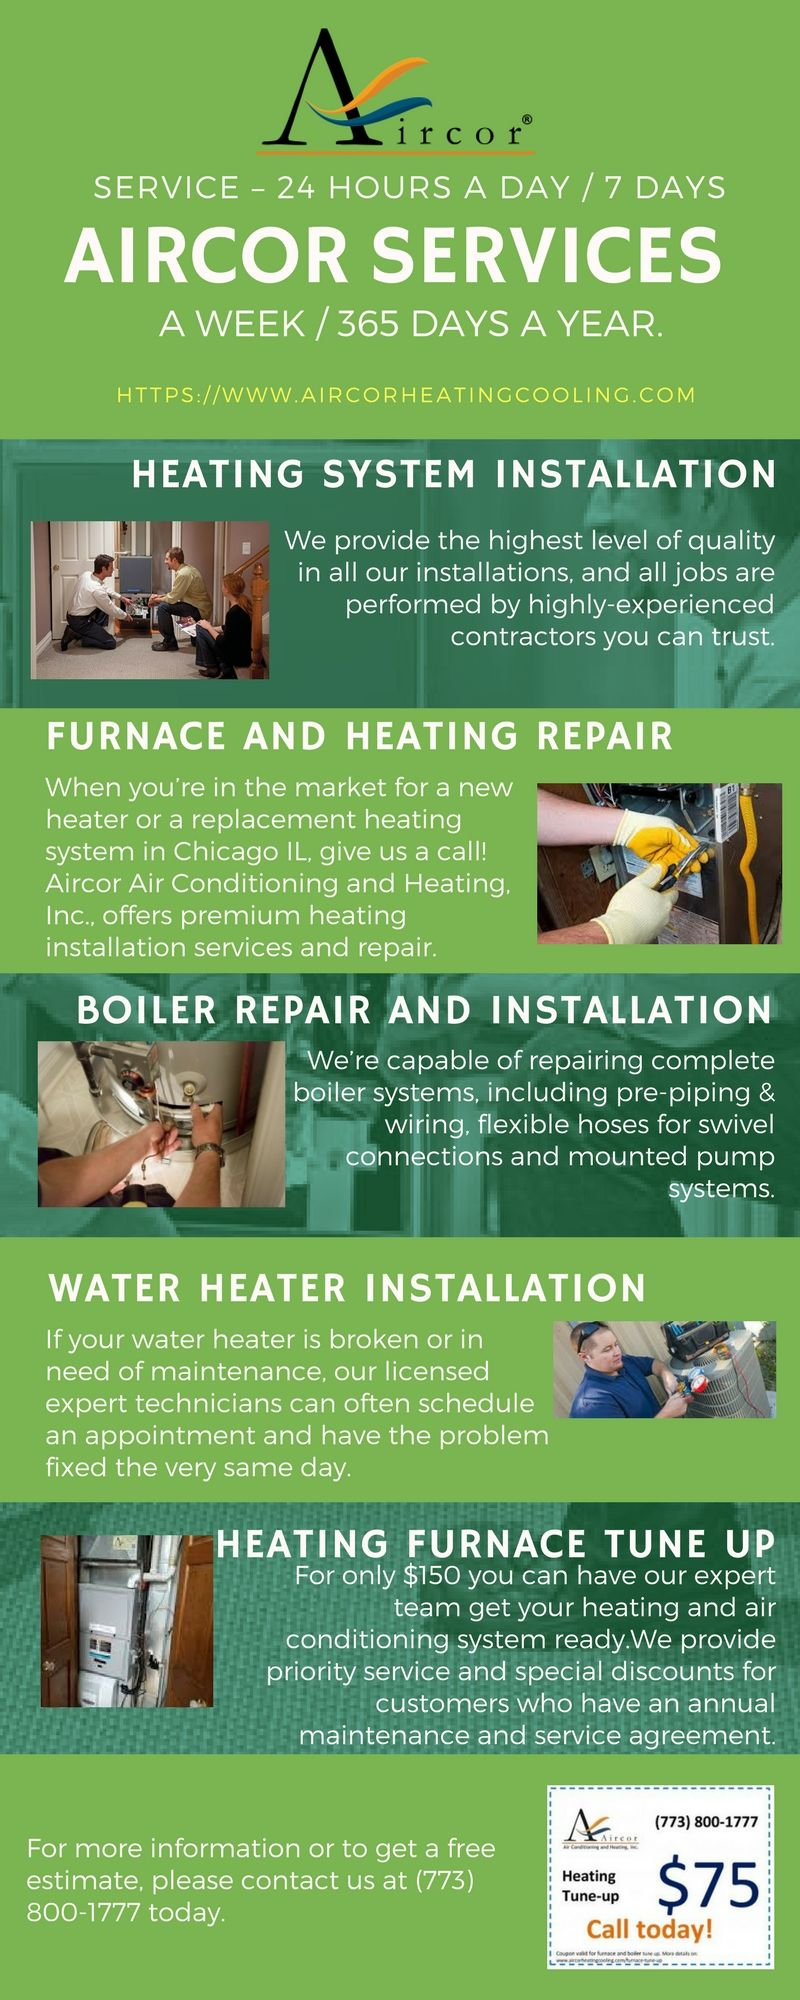 Aircor Chicago S Premier Air Conditioning And Heating With Images Air Conditioning Services Heating Repair Furnace Repair